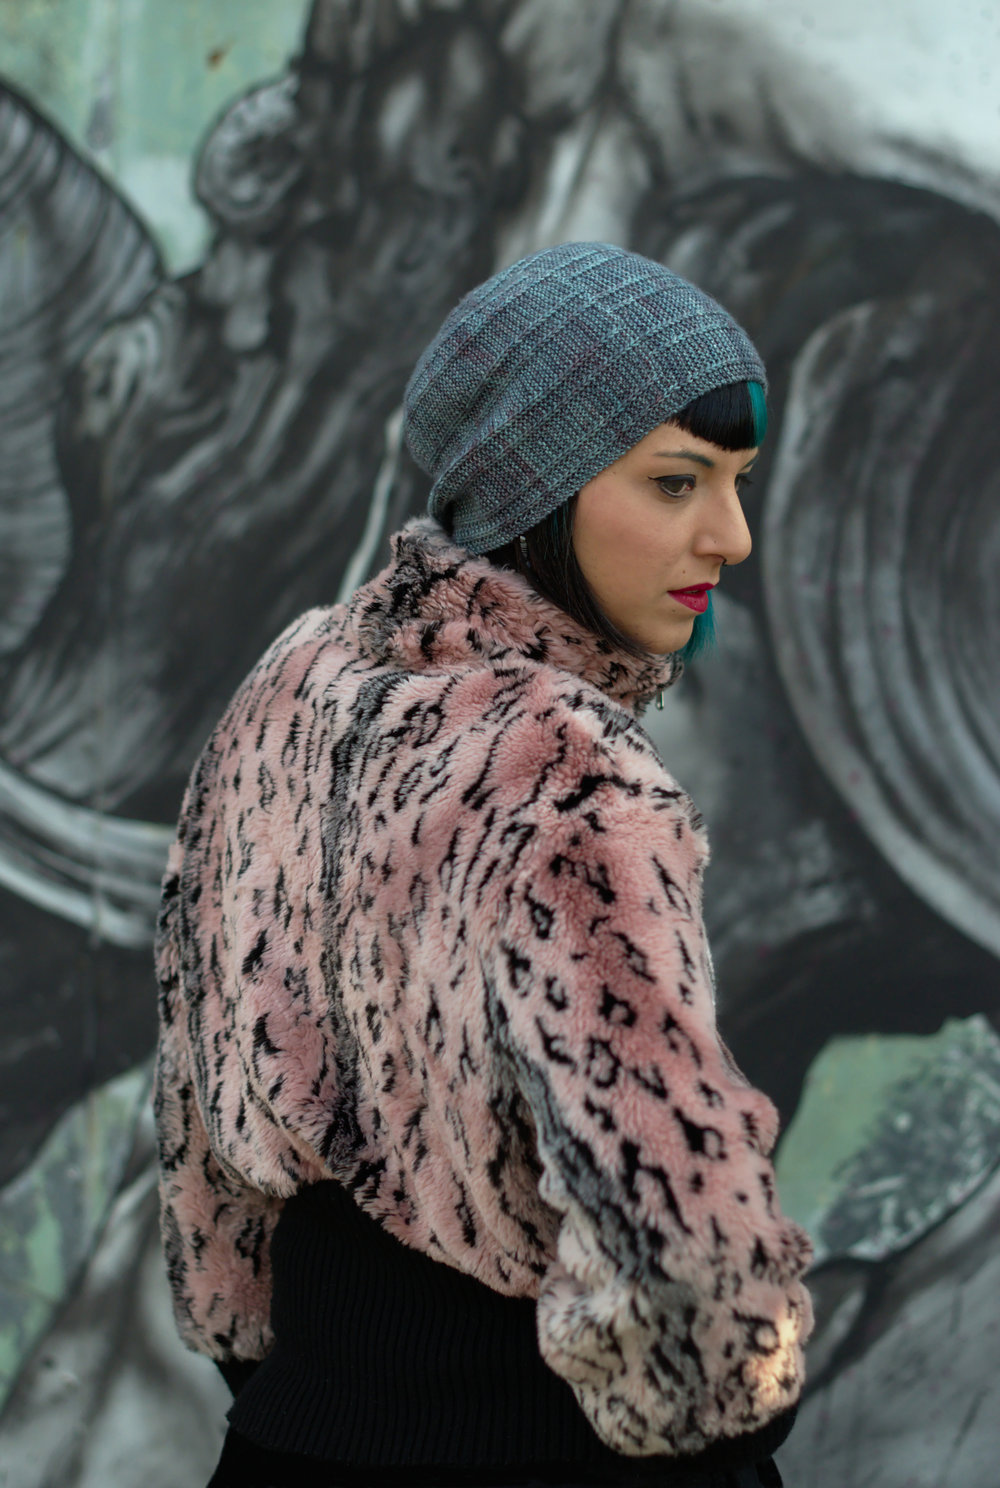 Circled 1 - sideways knit slouchy Hat featuring an offset arc design